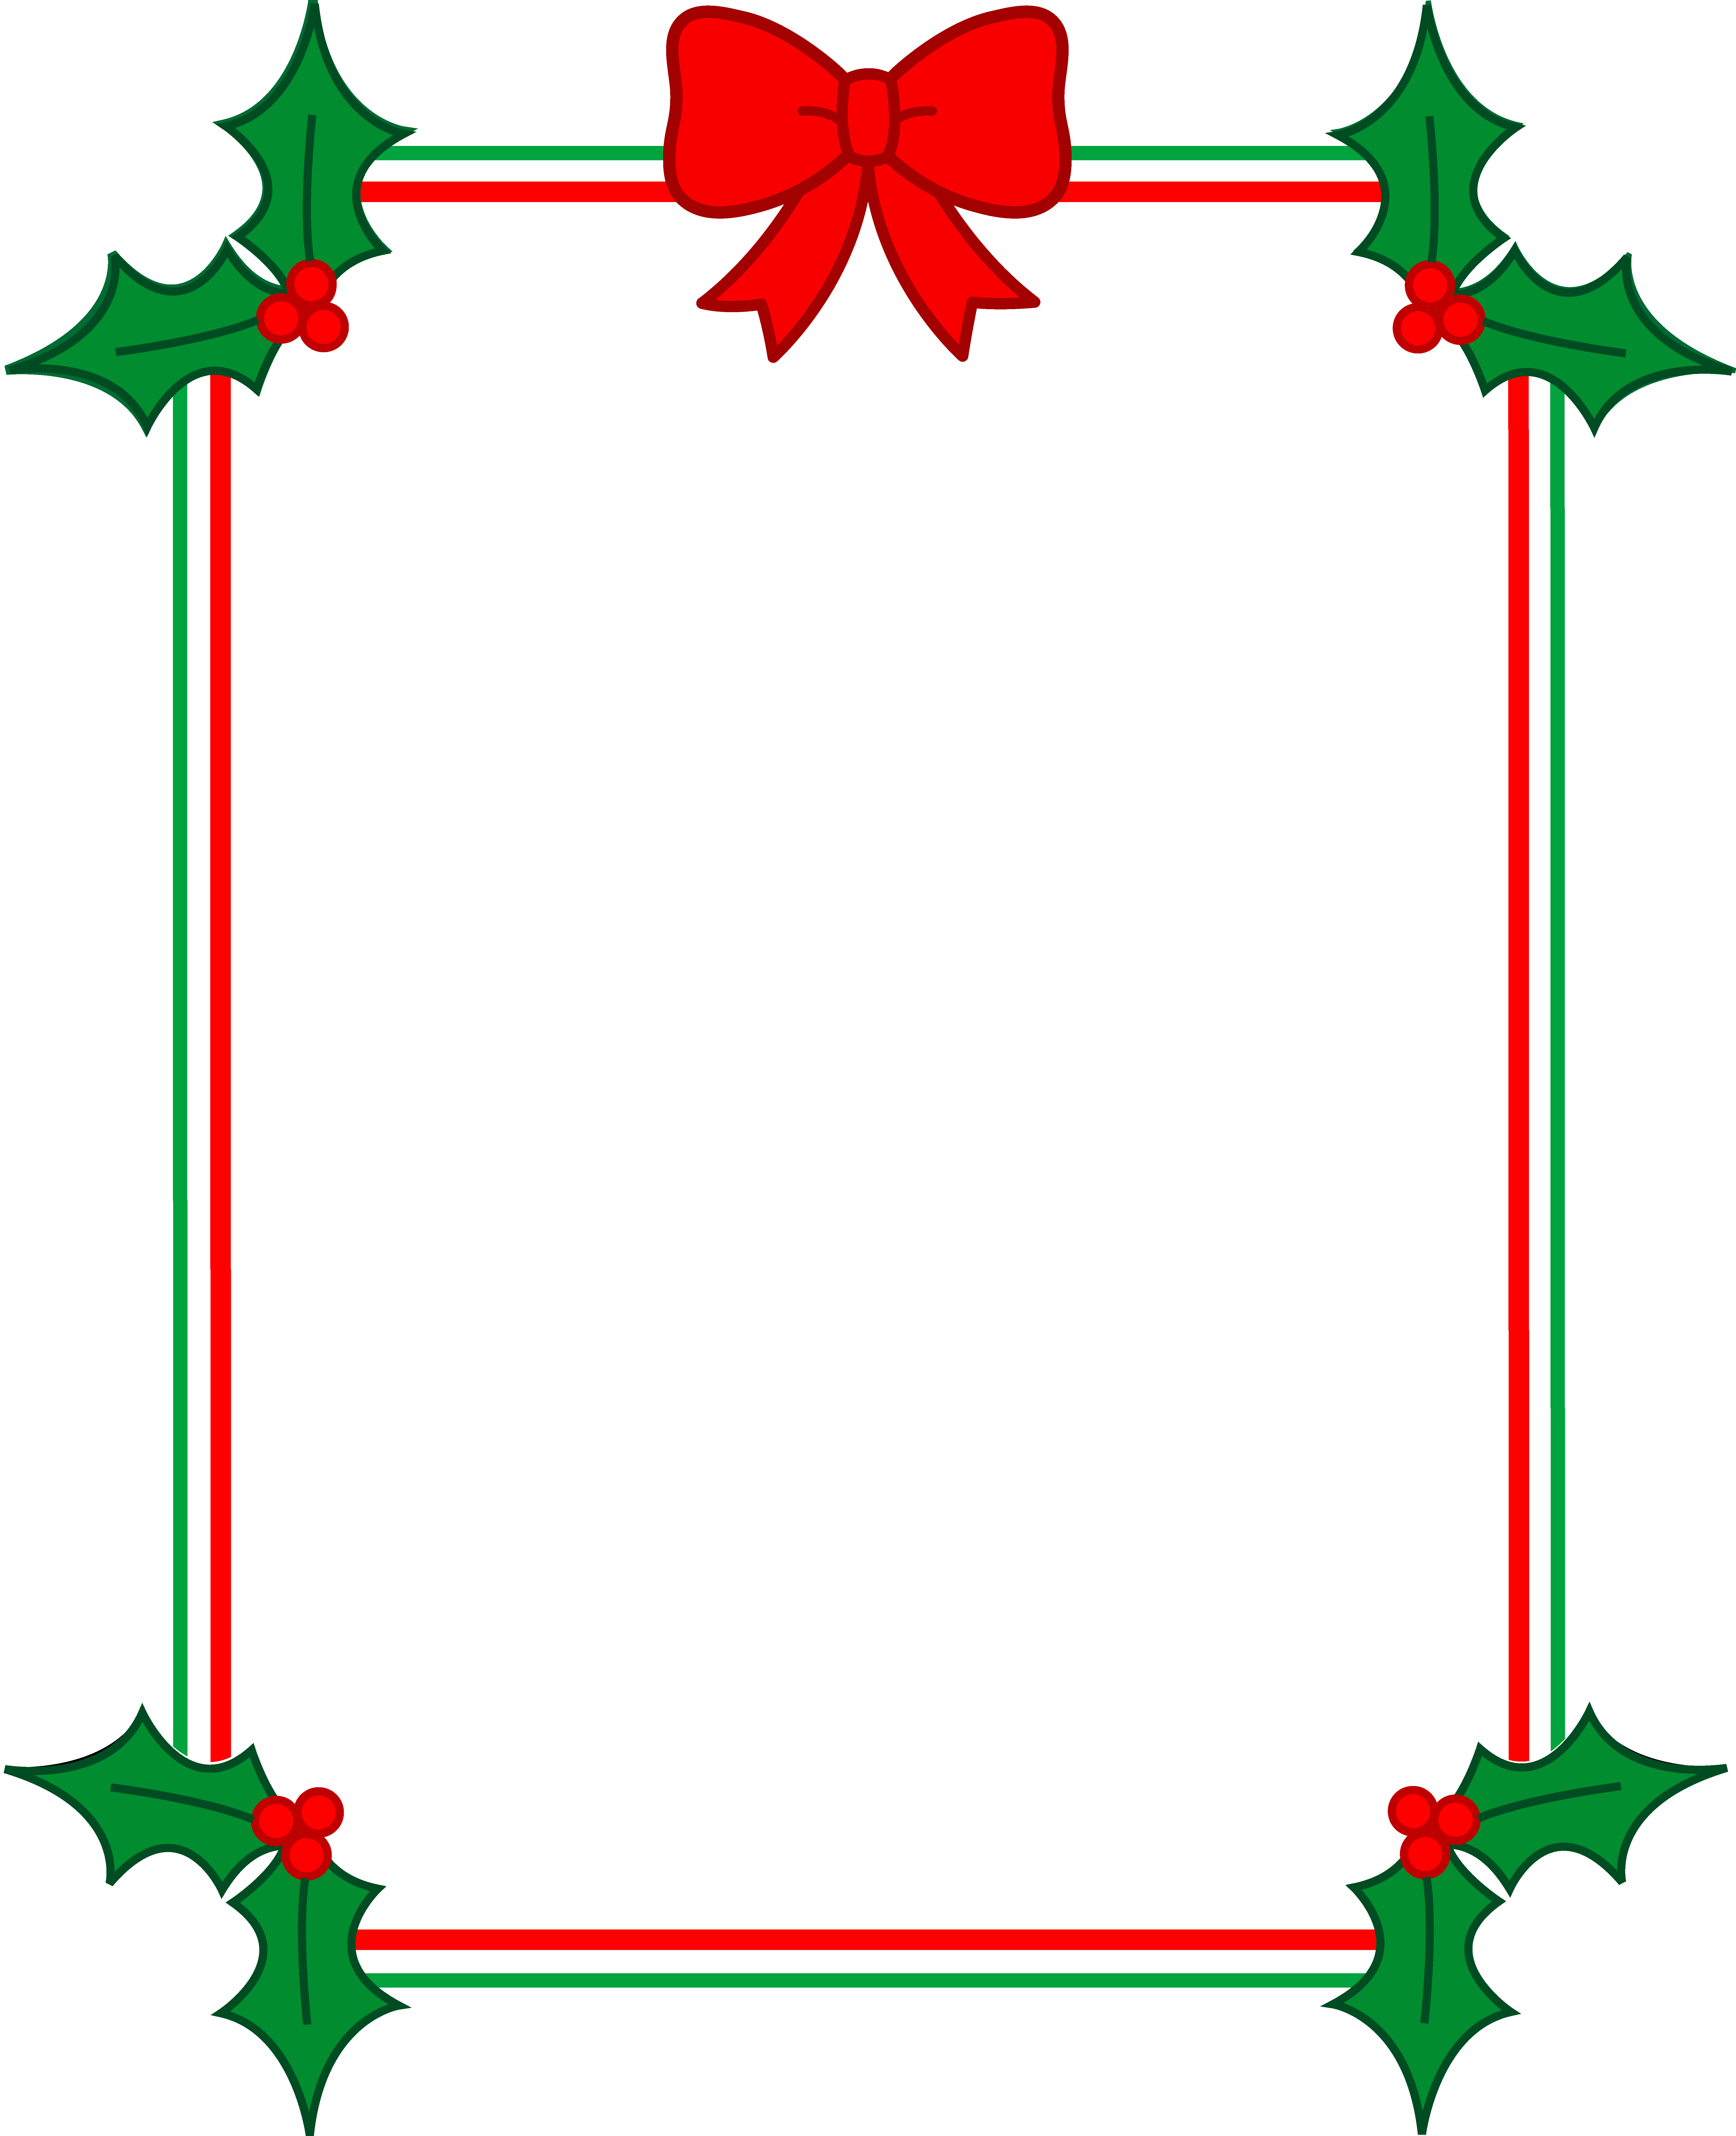 Christmas Border With Holly and Ribbon - Free Clip Art